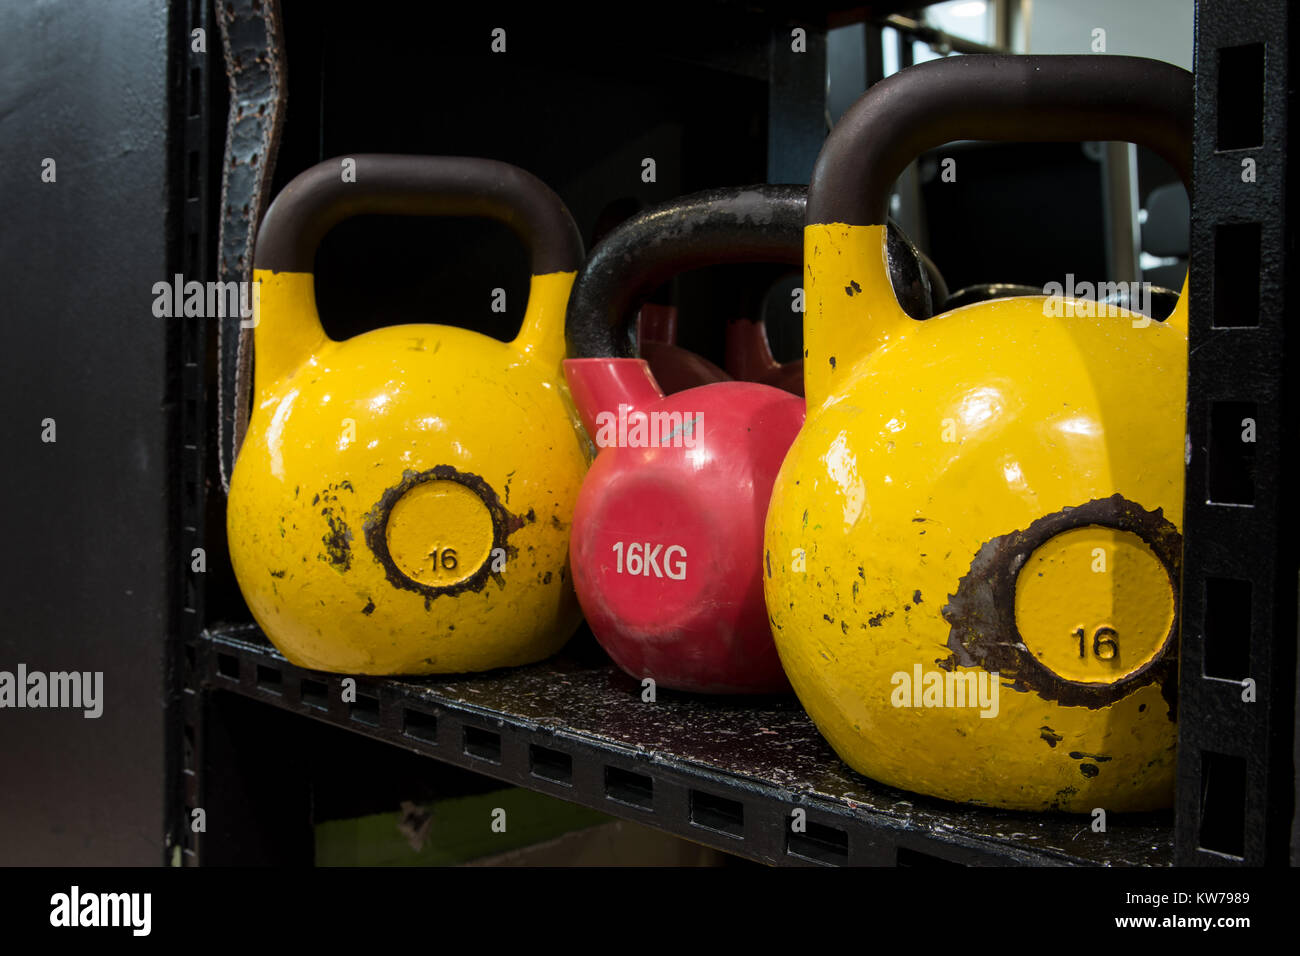 Set of colourful worn out kettlebells on a metal shelf in a gym. - Stock Image